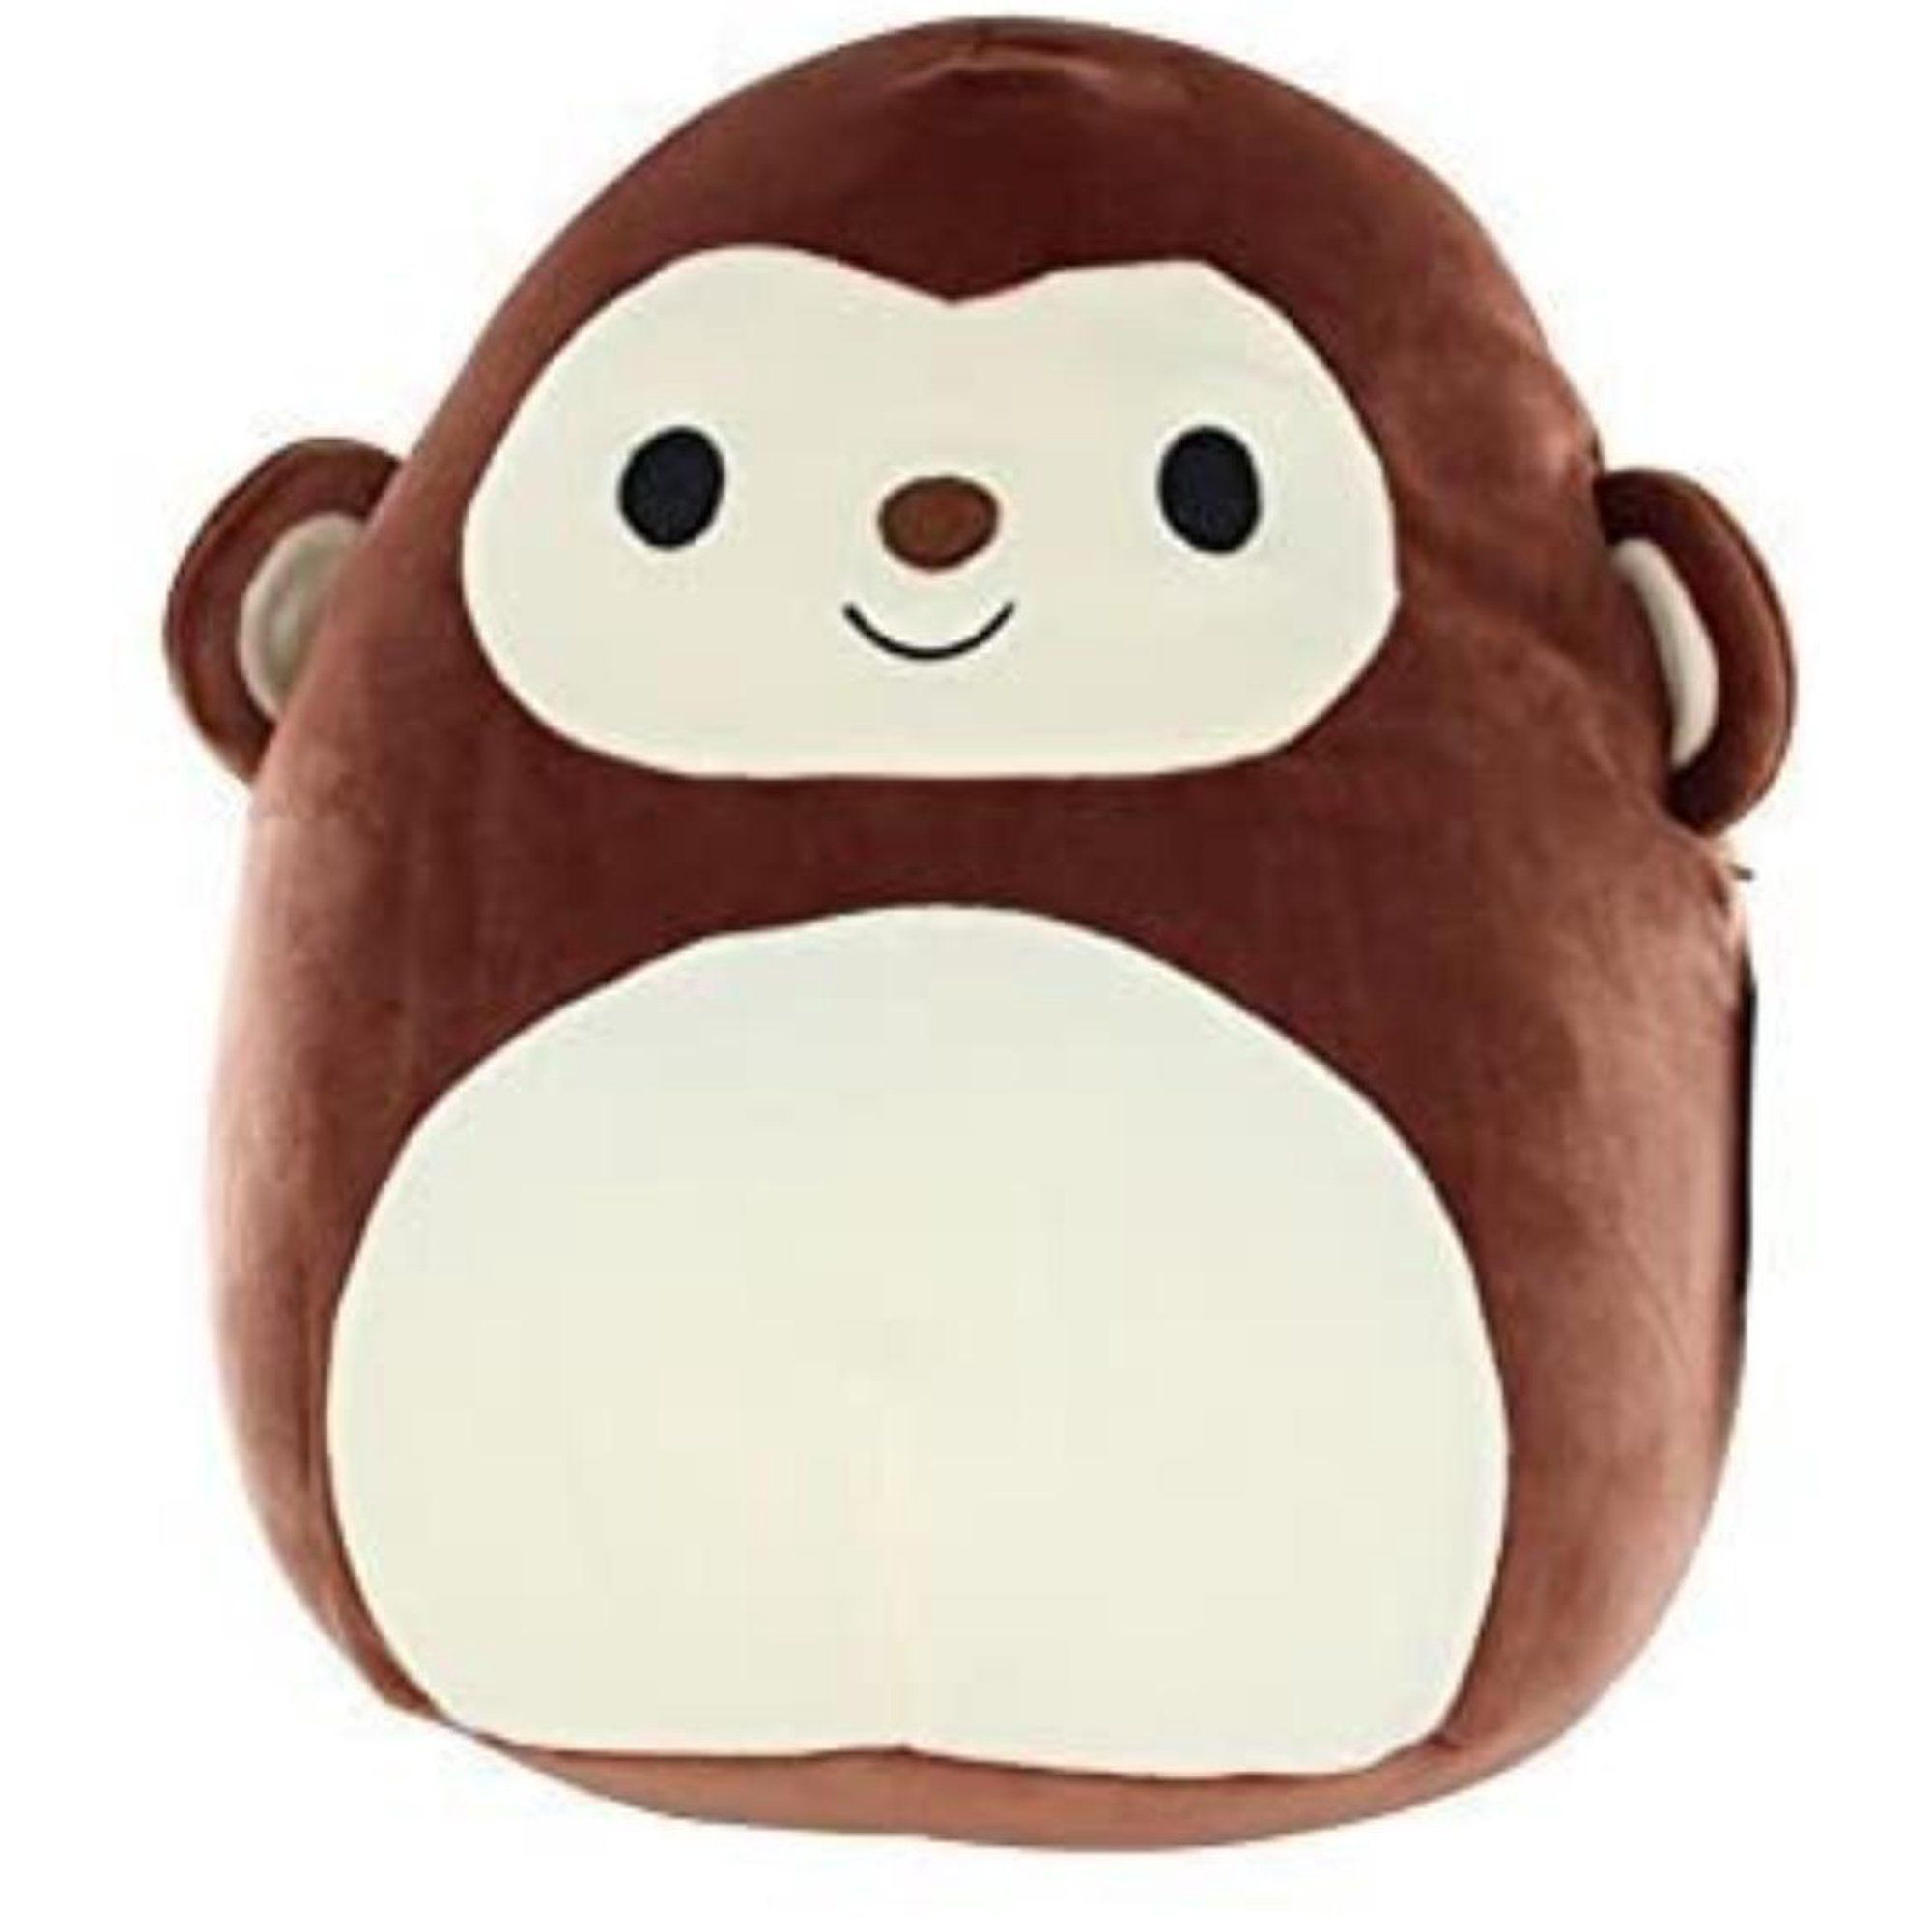 Kellytoy Squishmallow 16 Milly The Monkey Super Soft Plush Toy Pillow Pet Animal Pillow Pal Buddy Super Cozy Soft By Brand Squishmallow Walmart Com Animal Pillows Pillow Pals Soft Plush